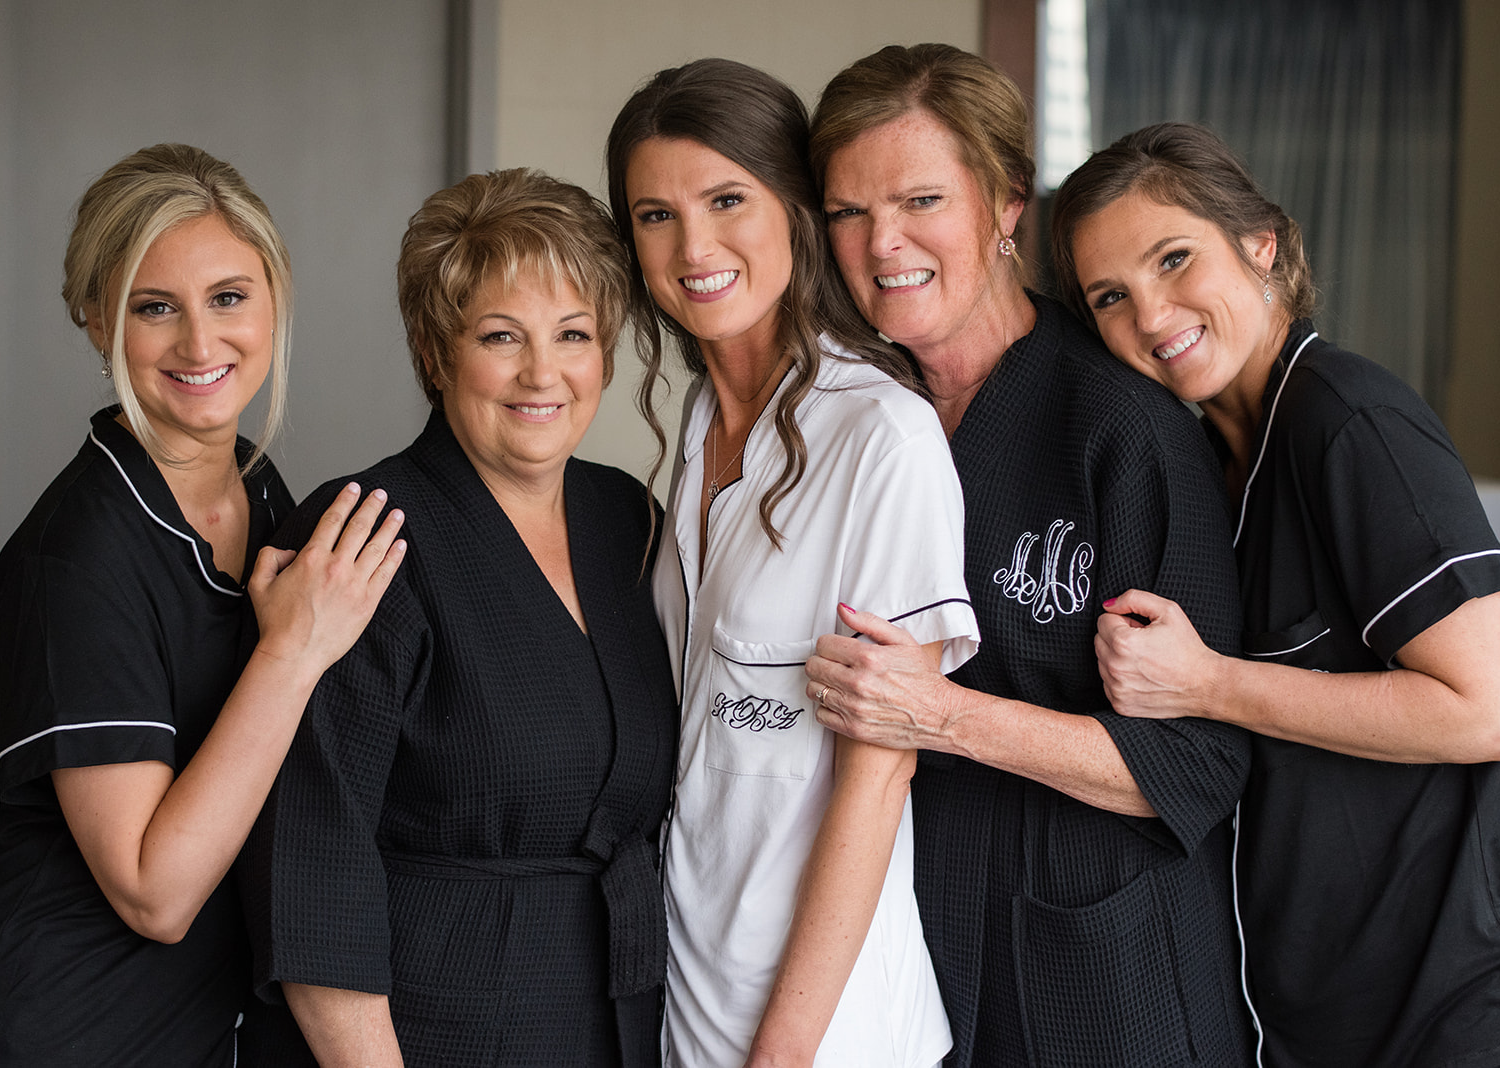 bride smiling with her bridesmaids and mother of the bride